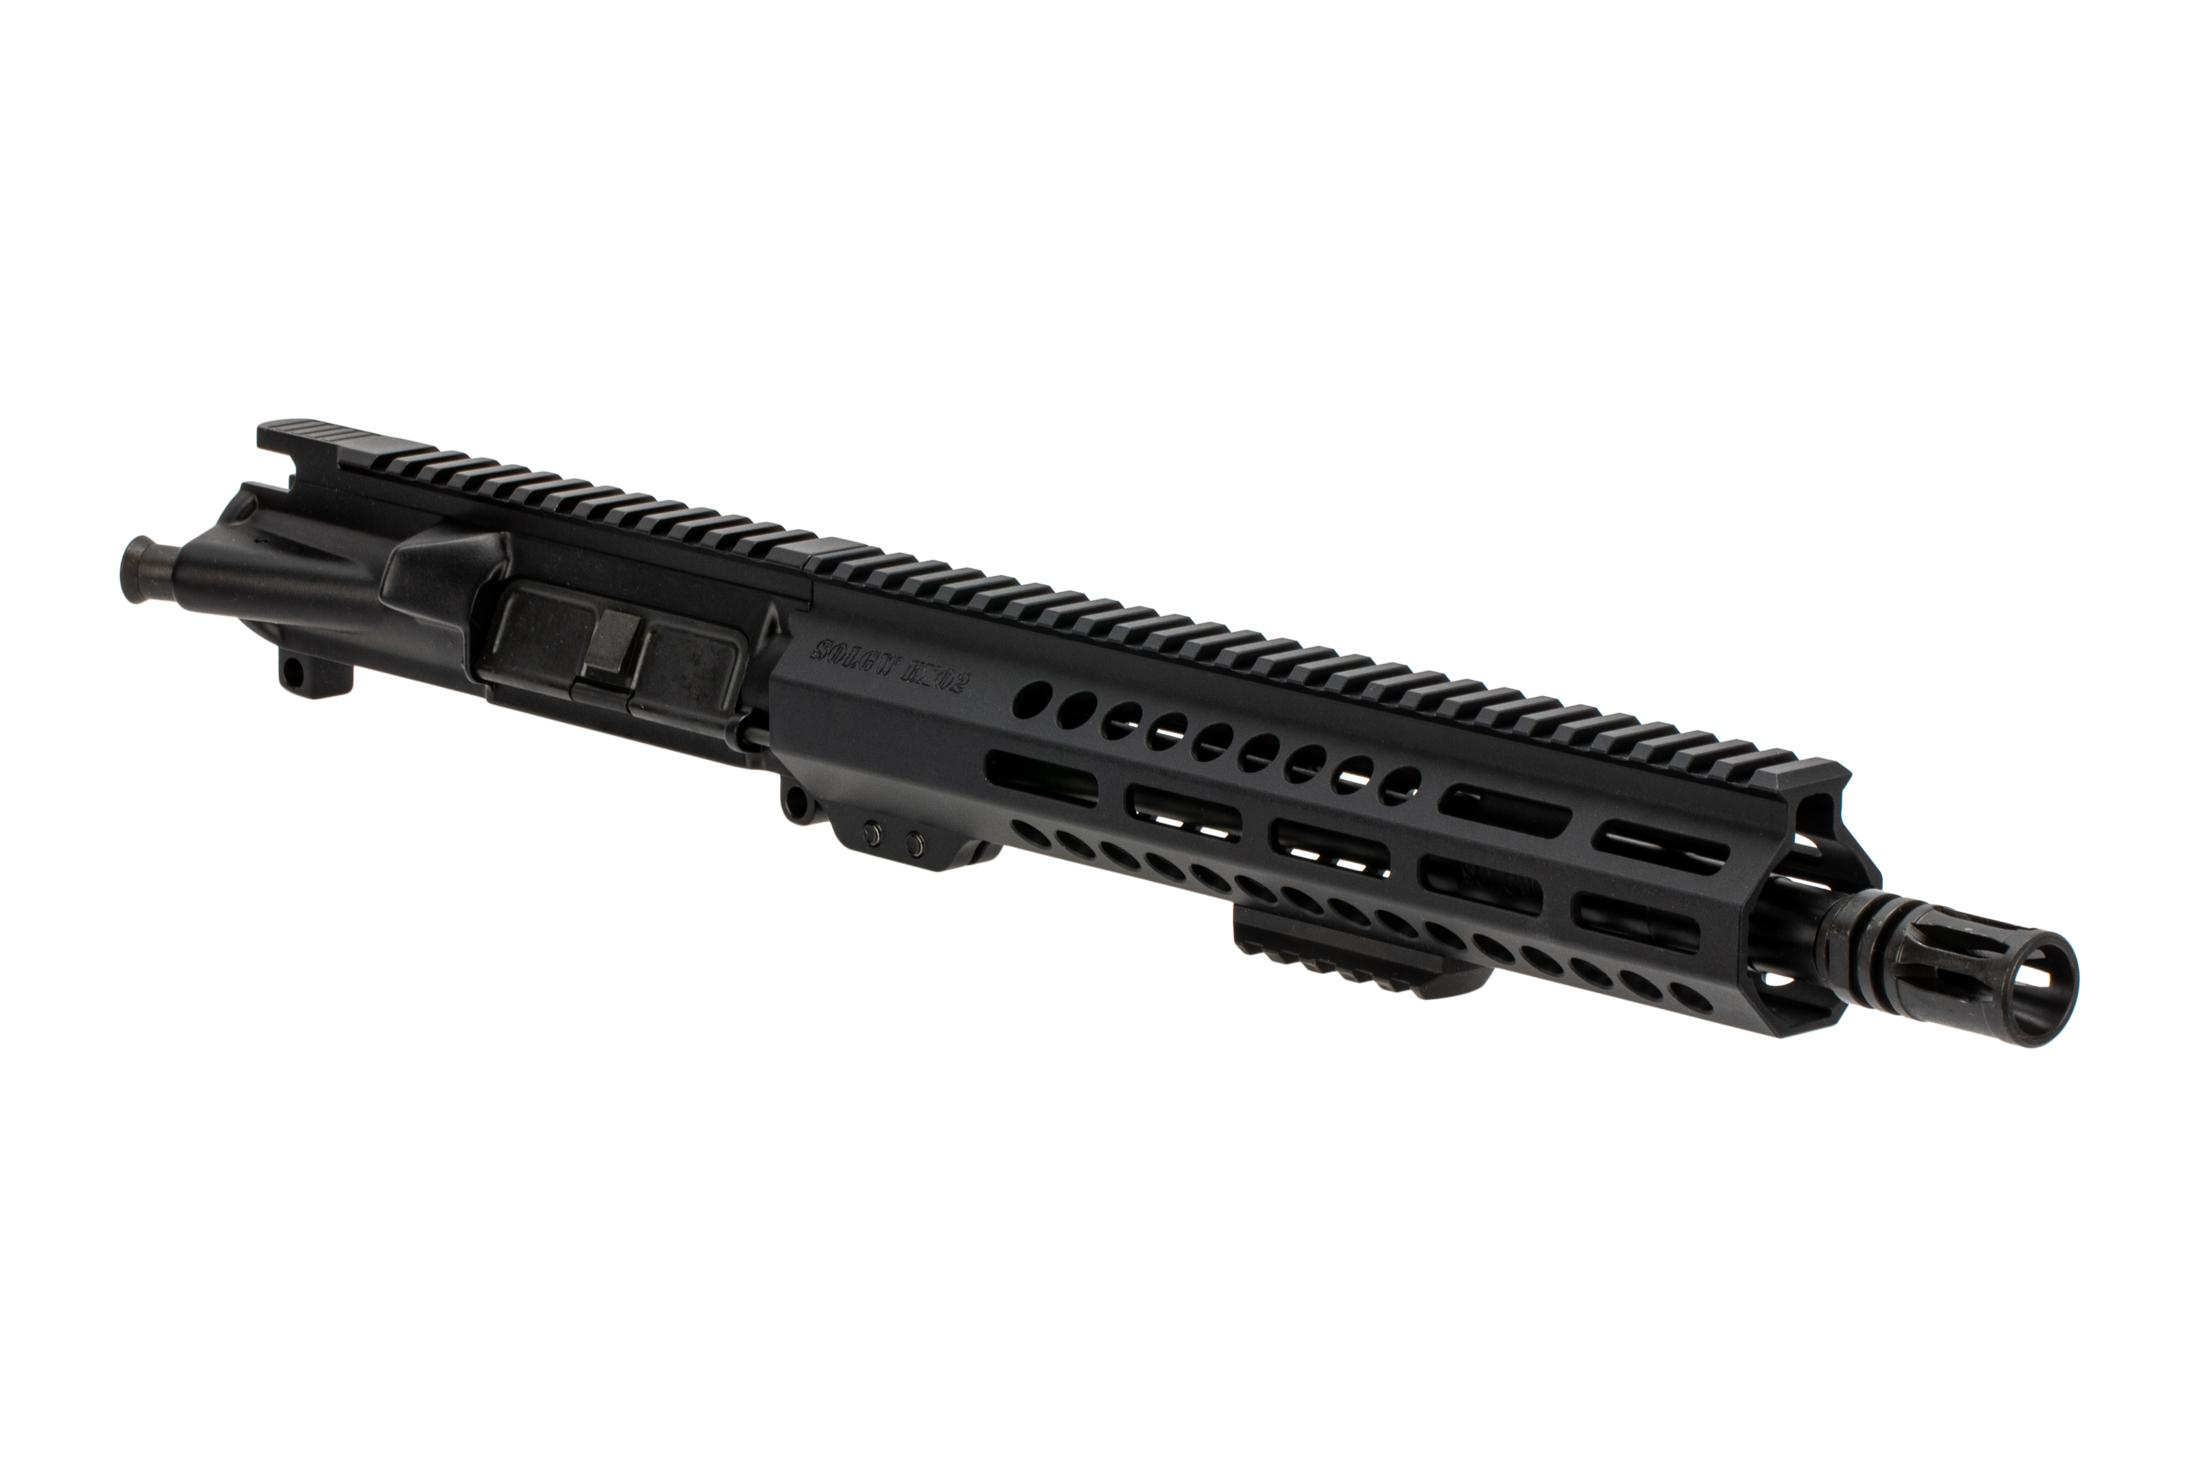 Sons of Liberty Gun Works 11.5 M4-EXO2 AR15 barreled upper receiver in 5.56 NATO with M-LOK rail